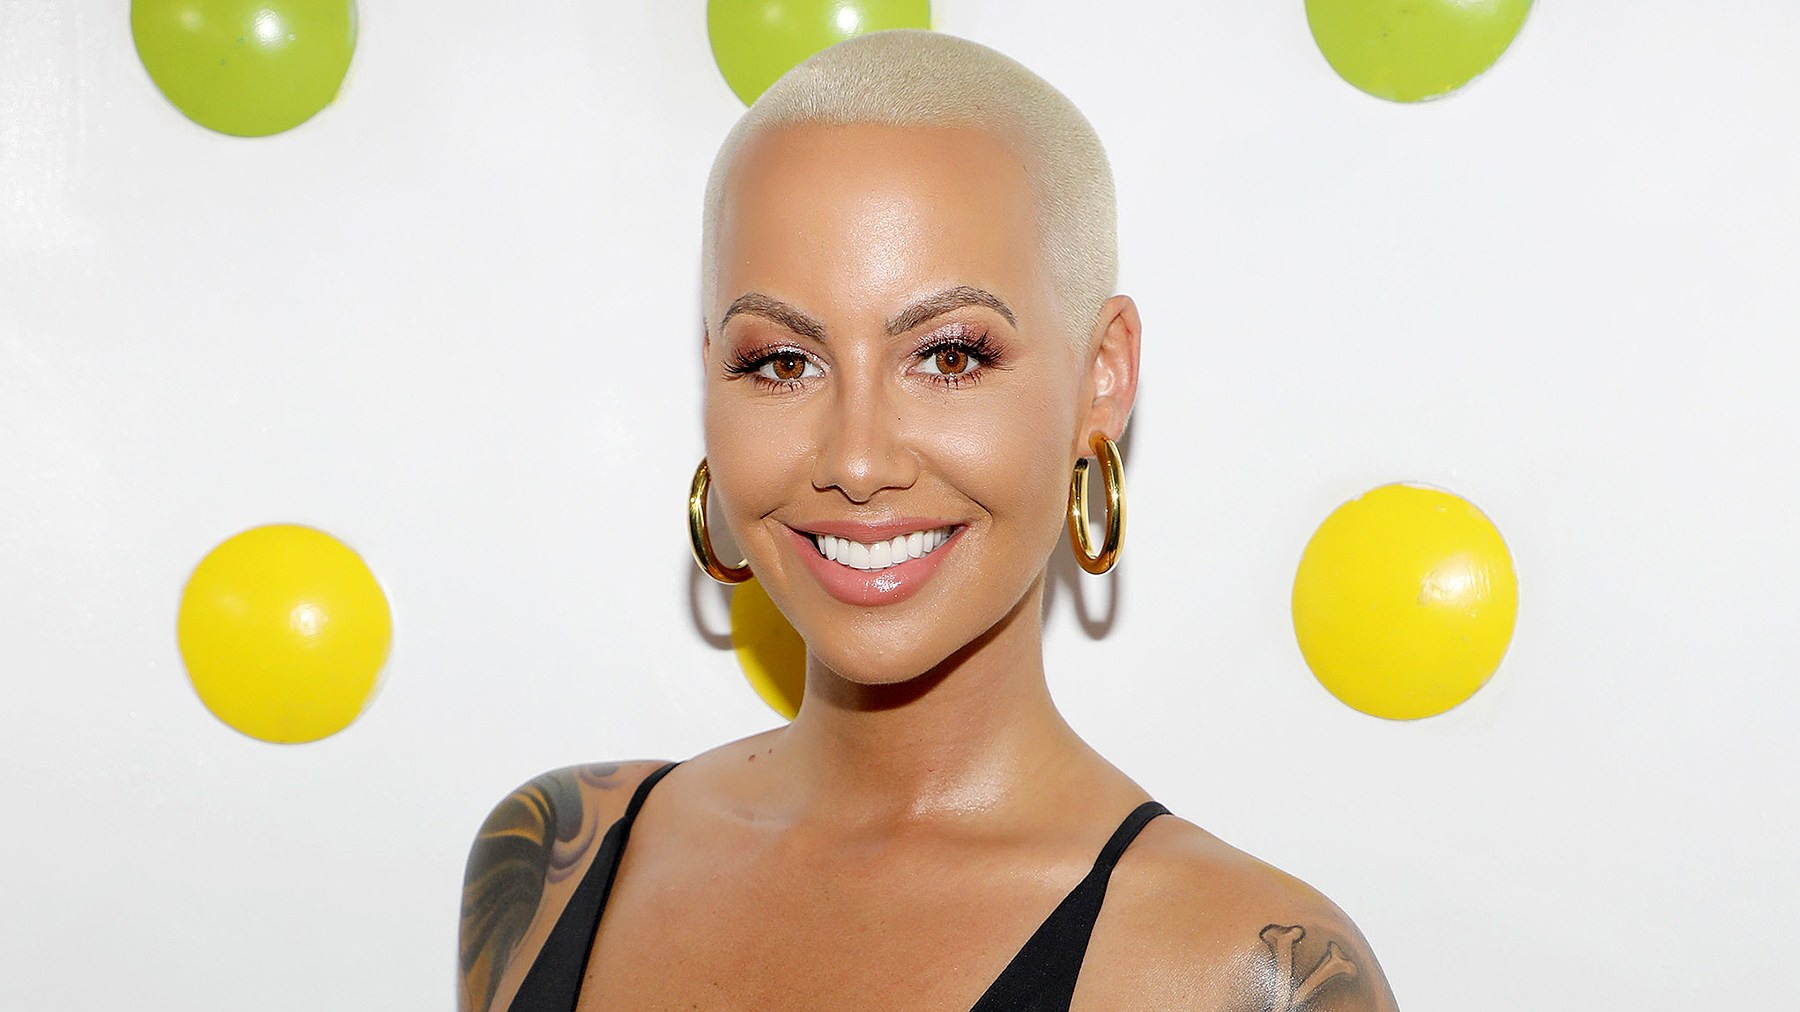 Amber Rose is seen celebrating the end of summer at Sugar Factory American Brasserie on August 18, 2017 in Miami Beach, Florida.